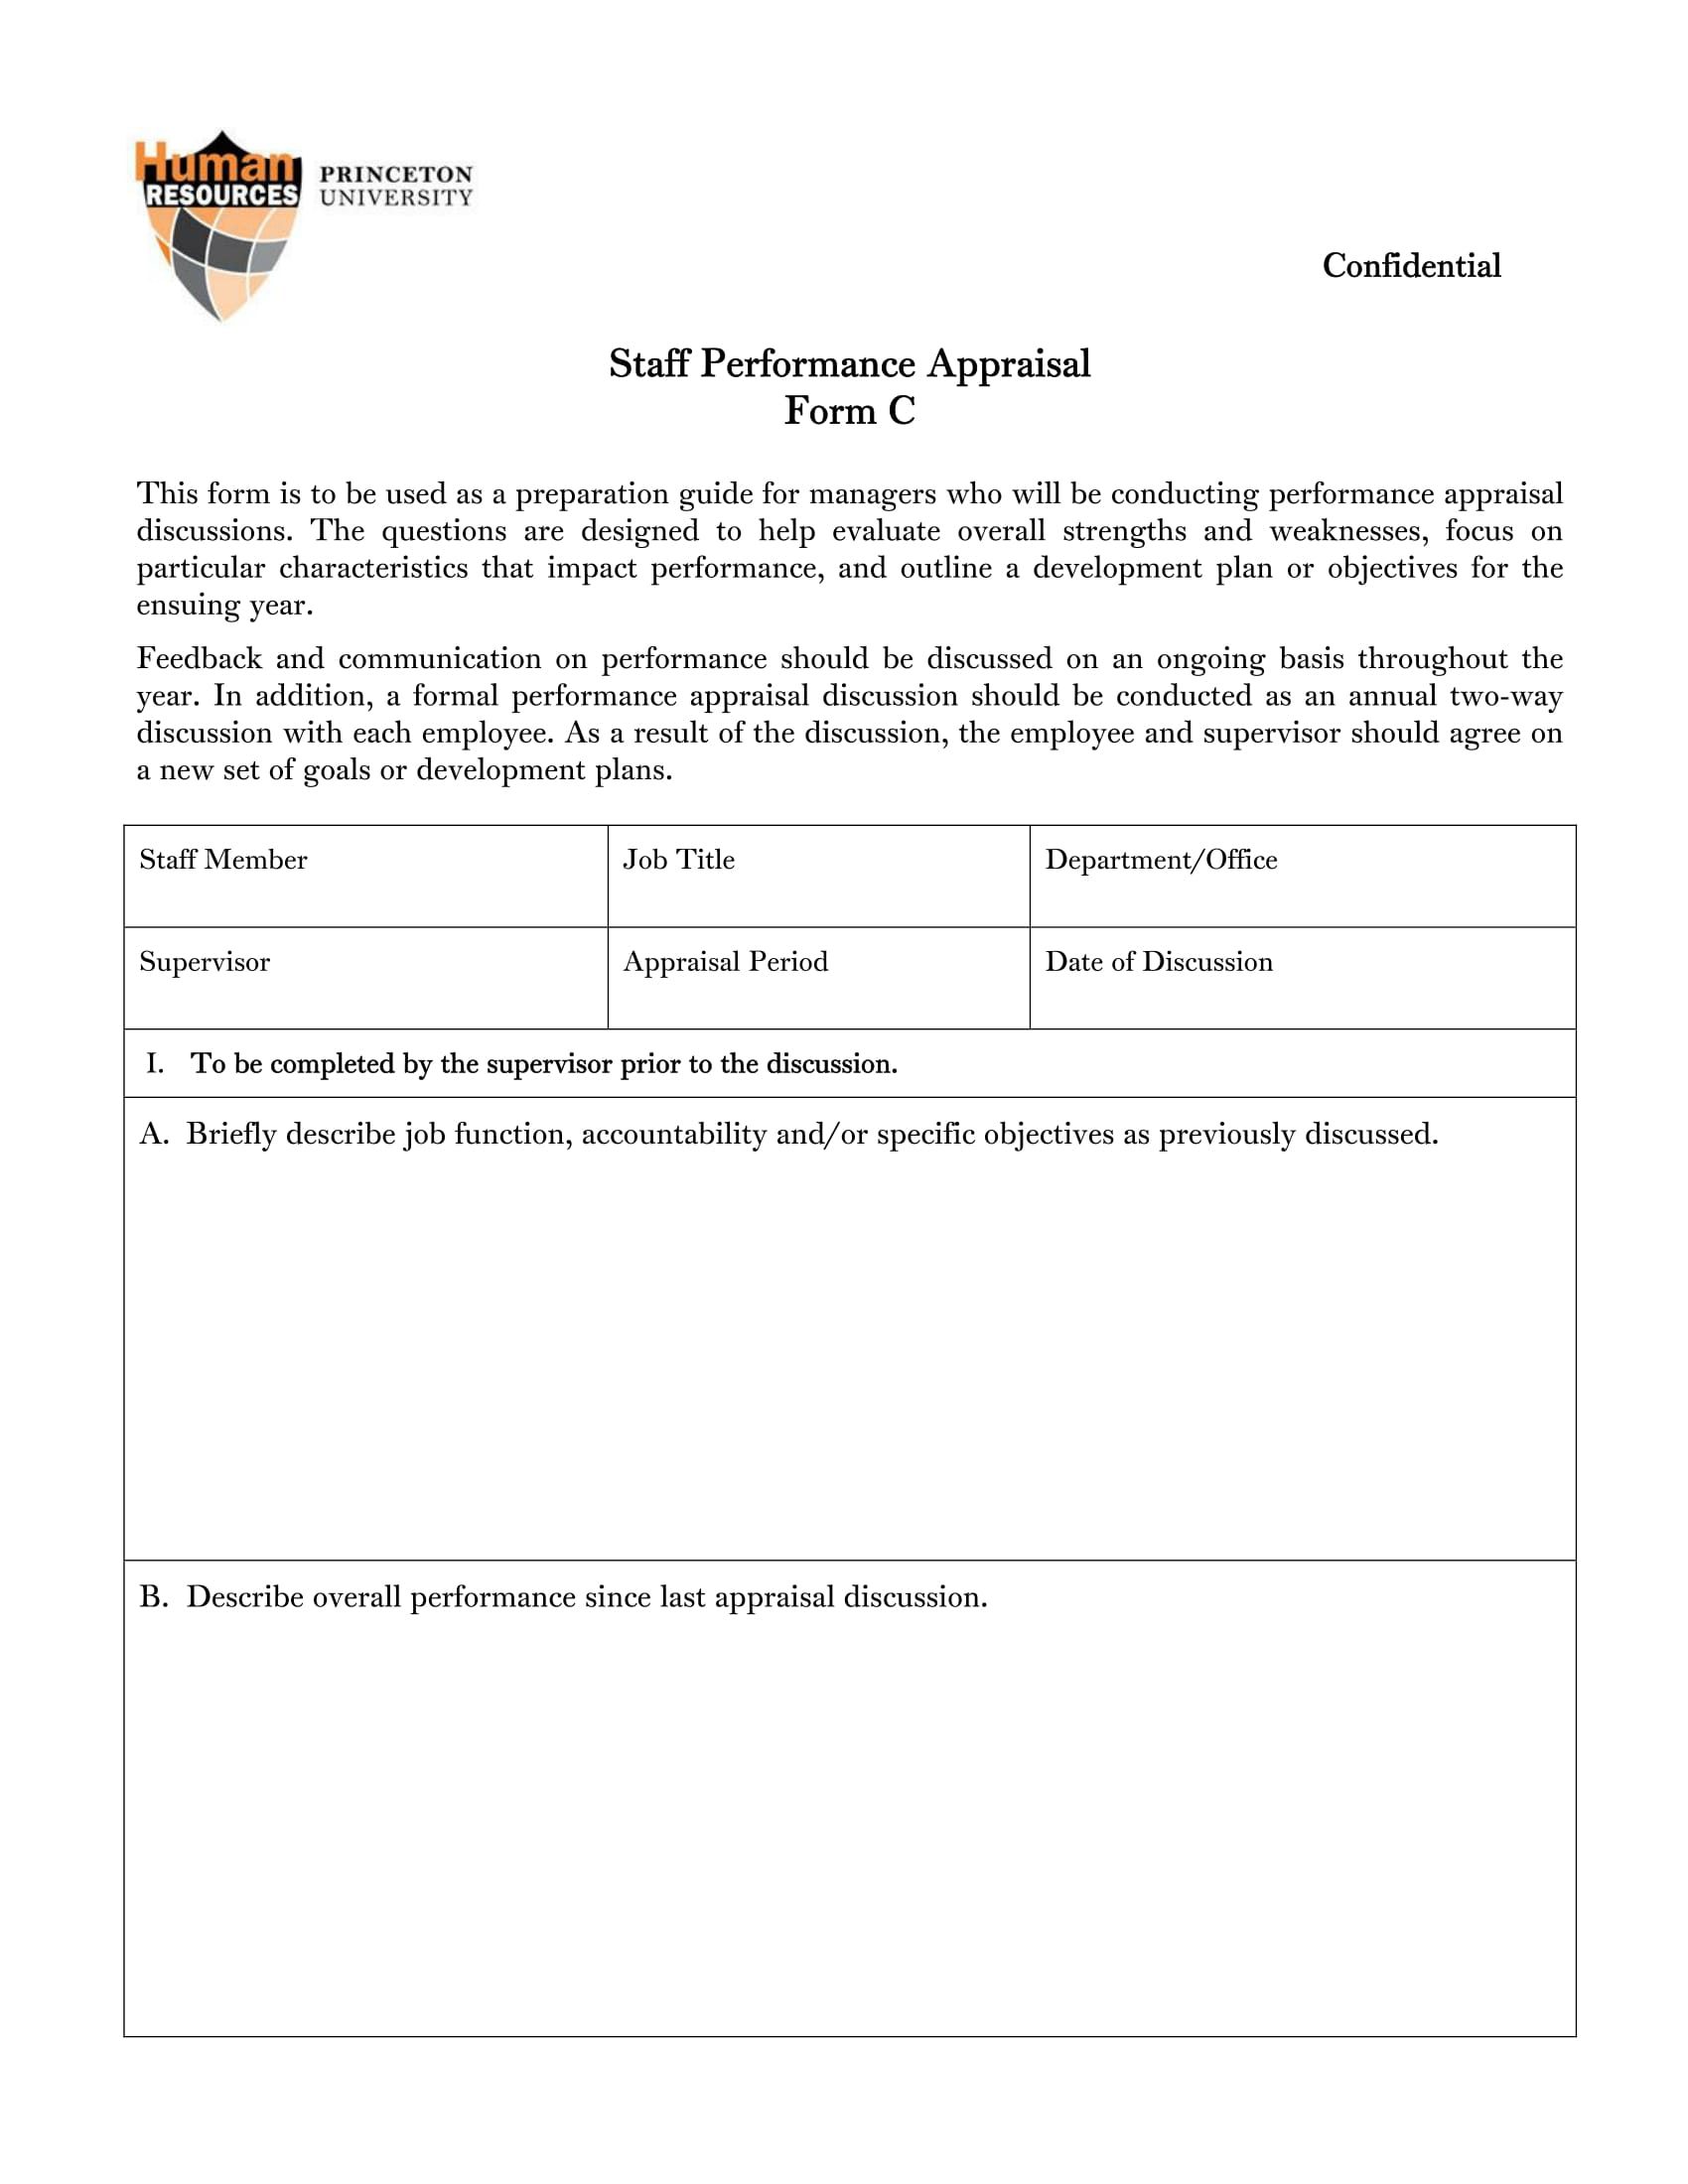 staff appraisal feedback form 1